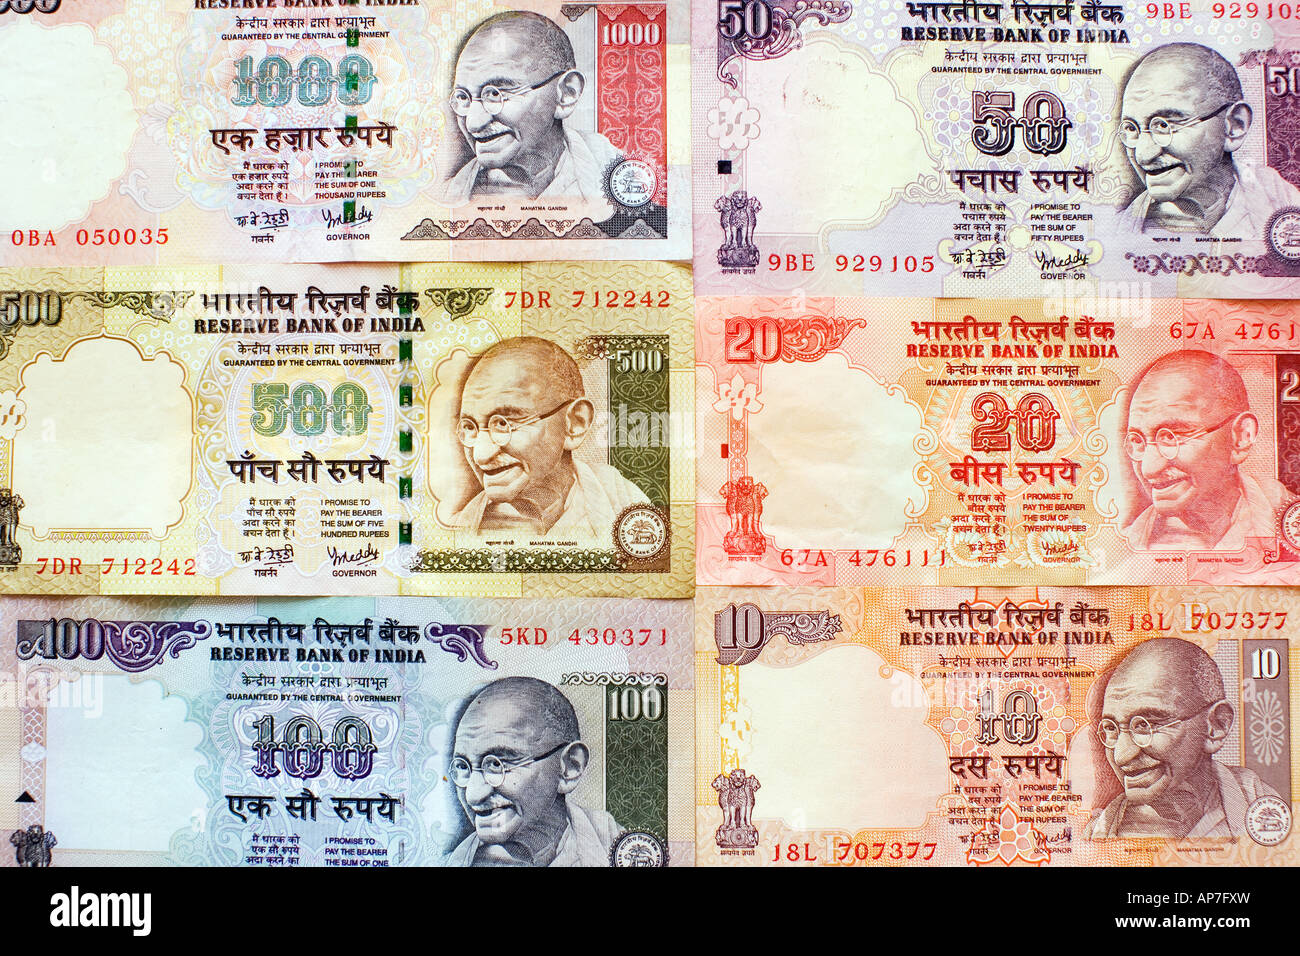 Indian Rupee Notes Stock Photo Royalty Free Image